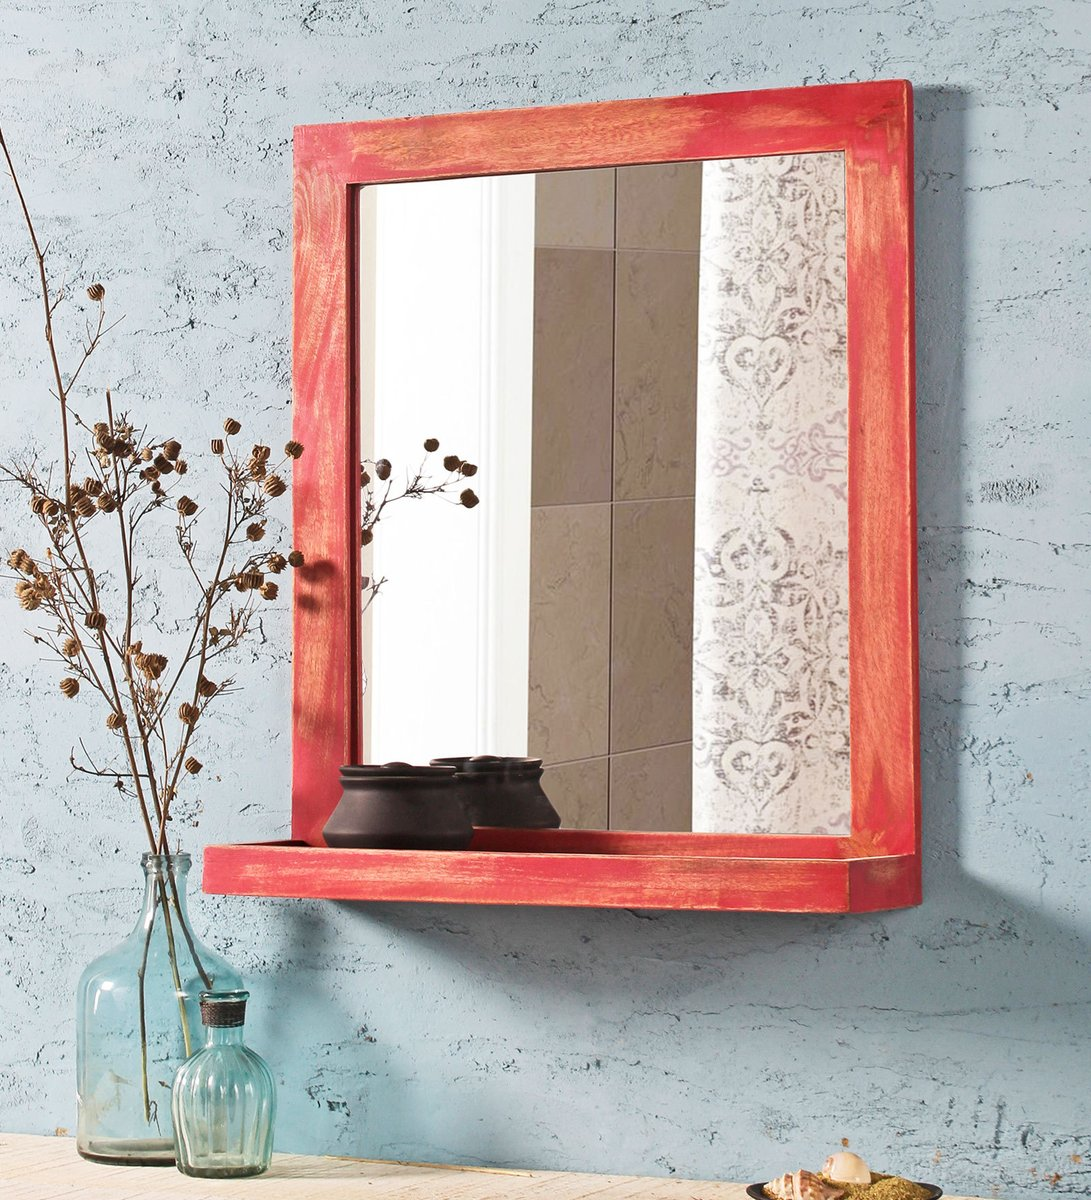 Made you look Featured: Wood Wall Mirror by Fabuliv   #pepperfry #happyfurnituretoyou #shop #onlineshopping #studiopepperfry #furniture #home #indianhomes #india #happiness #designs #interior #decor #homedecor #mirror #look #goodlooking #gorgeous #beautiful